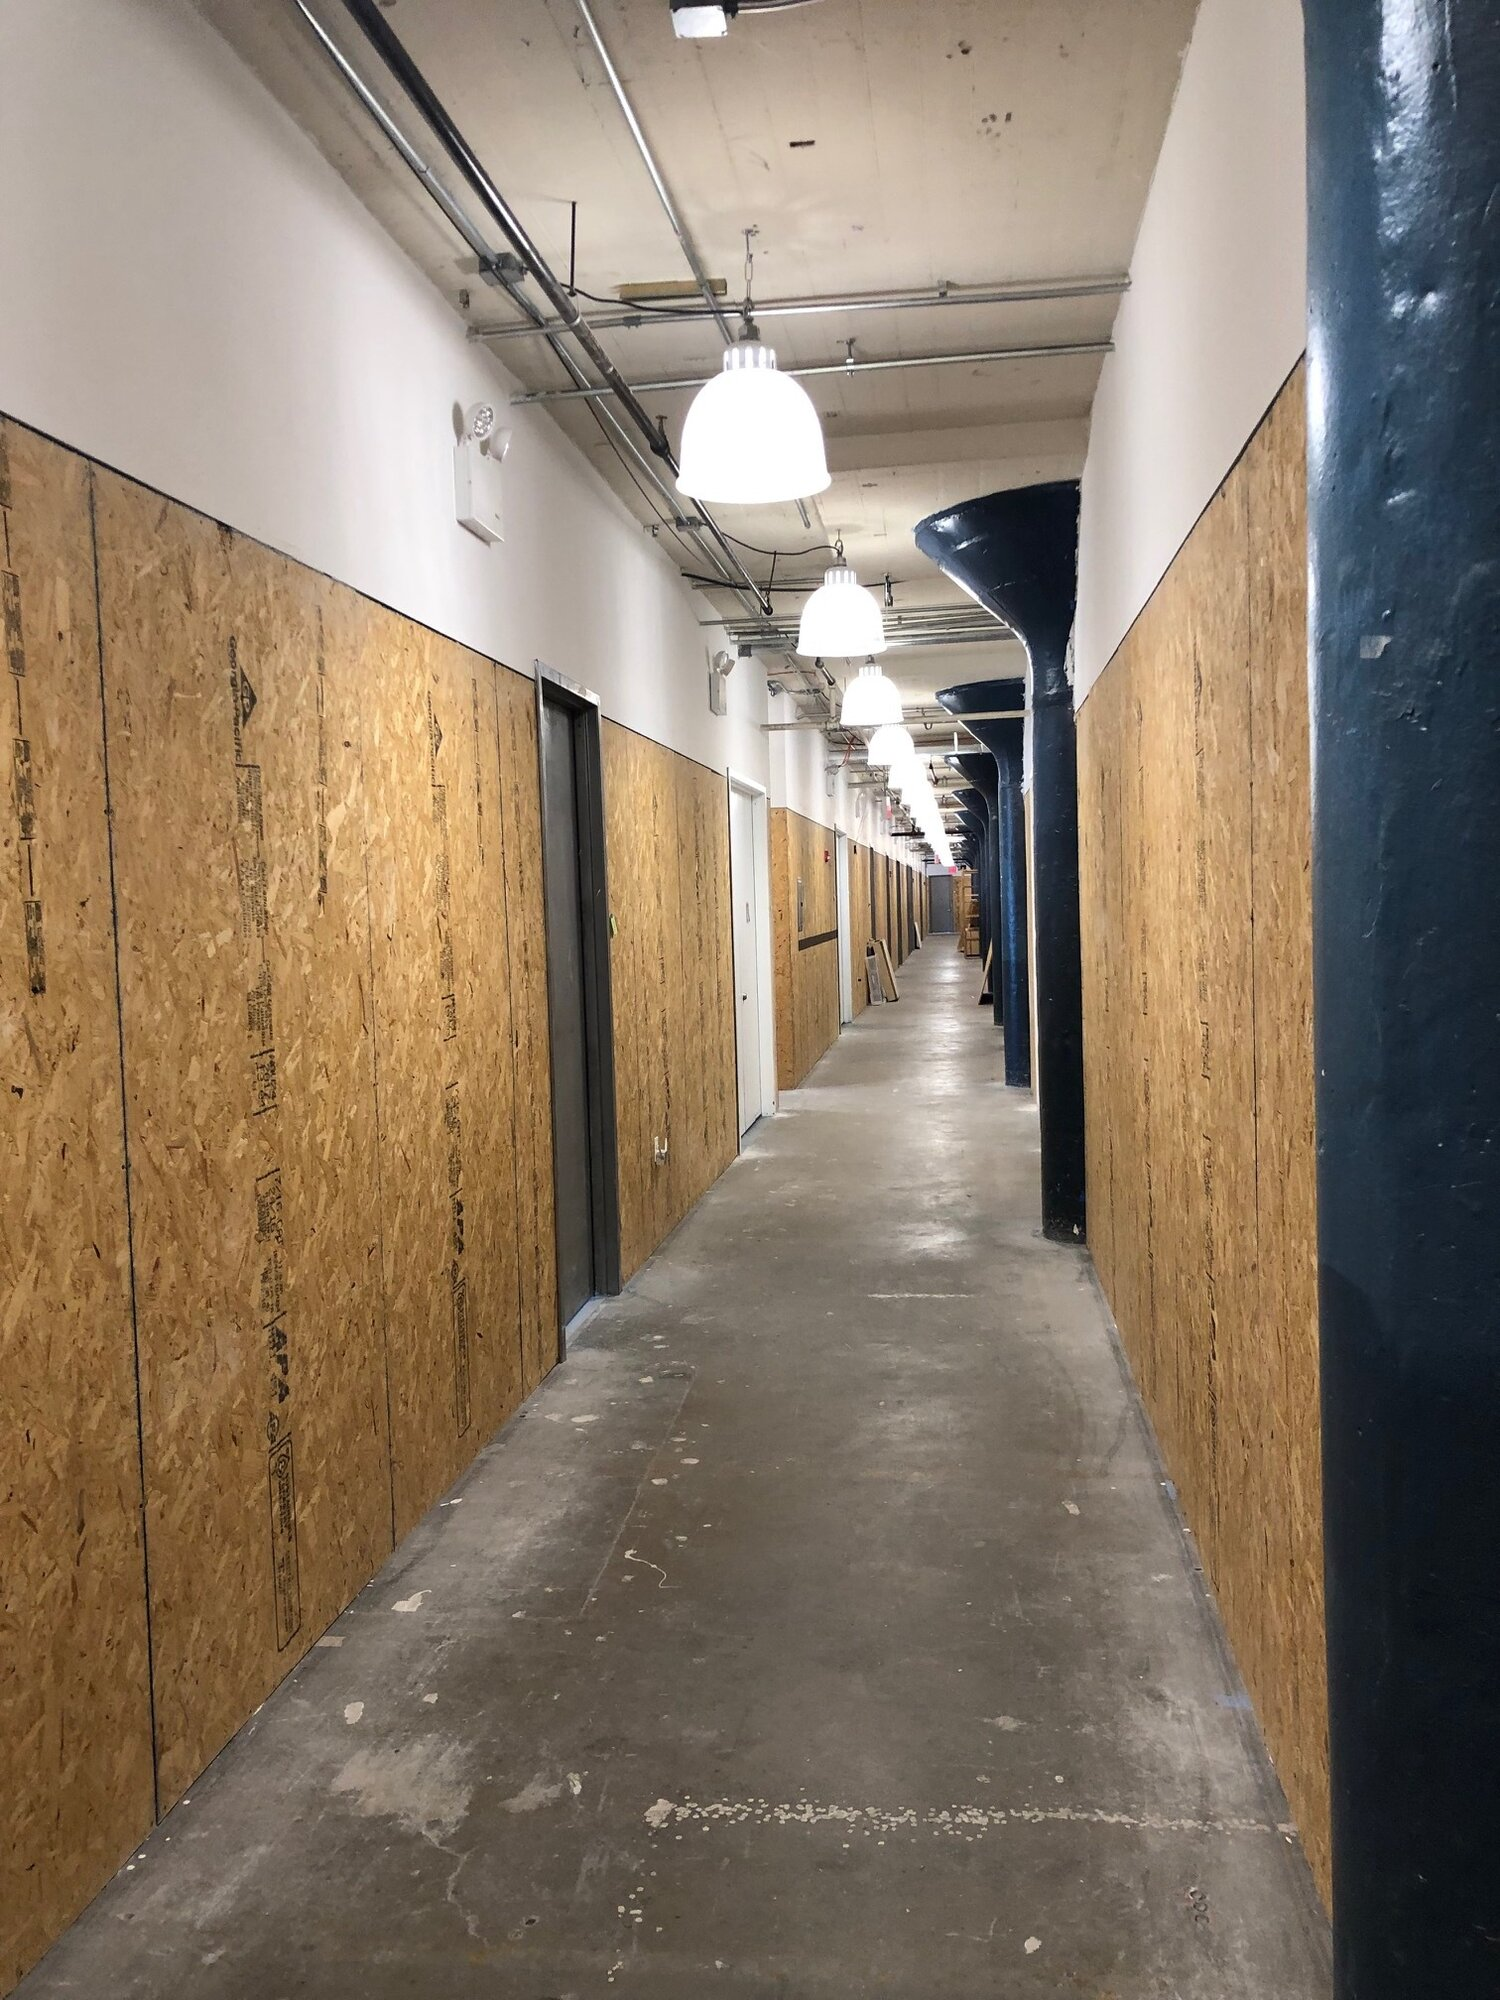 Figure 5. View of the hallway leading to artists' rented studio in Building B, Brooklyn Army Terminal, February 2019. Photo by Mira Rai Waits.